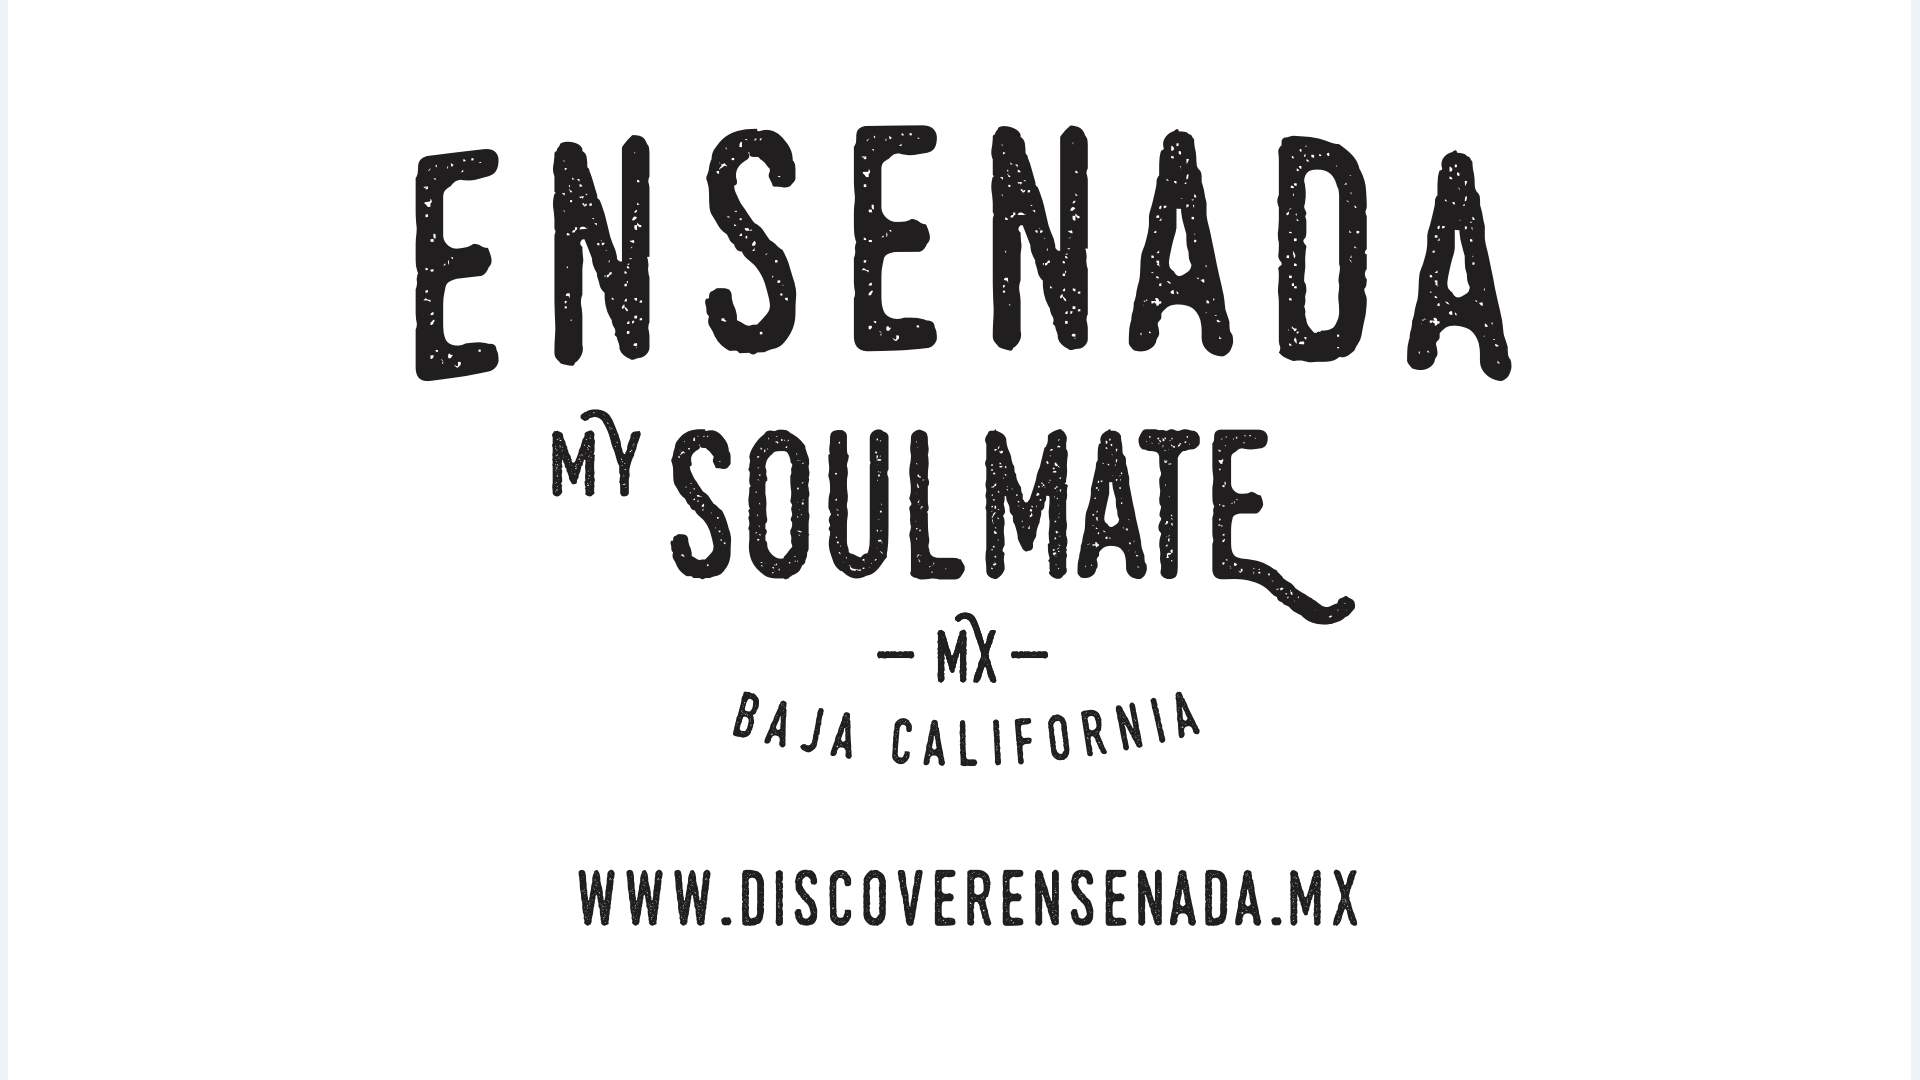 Ensenada my soulmate